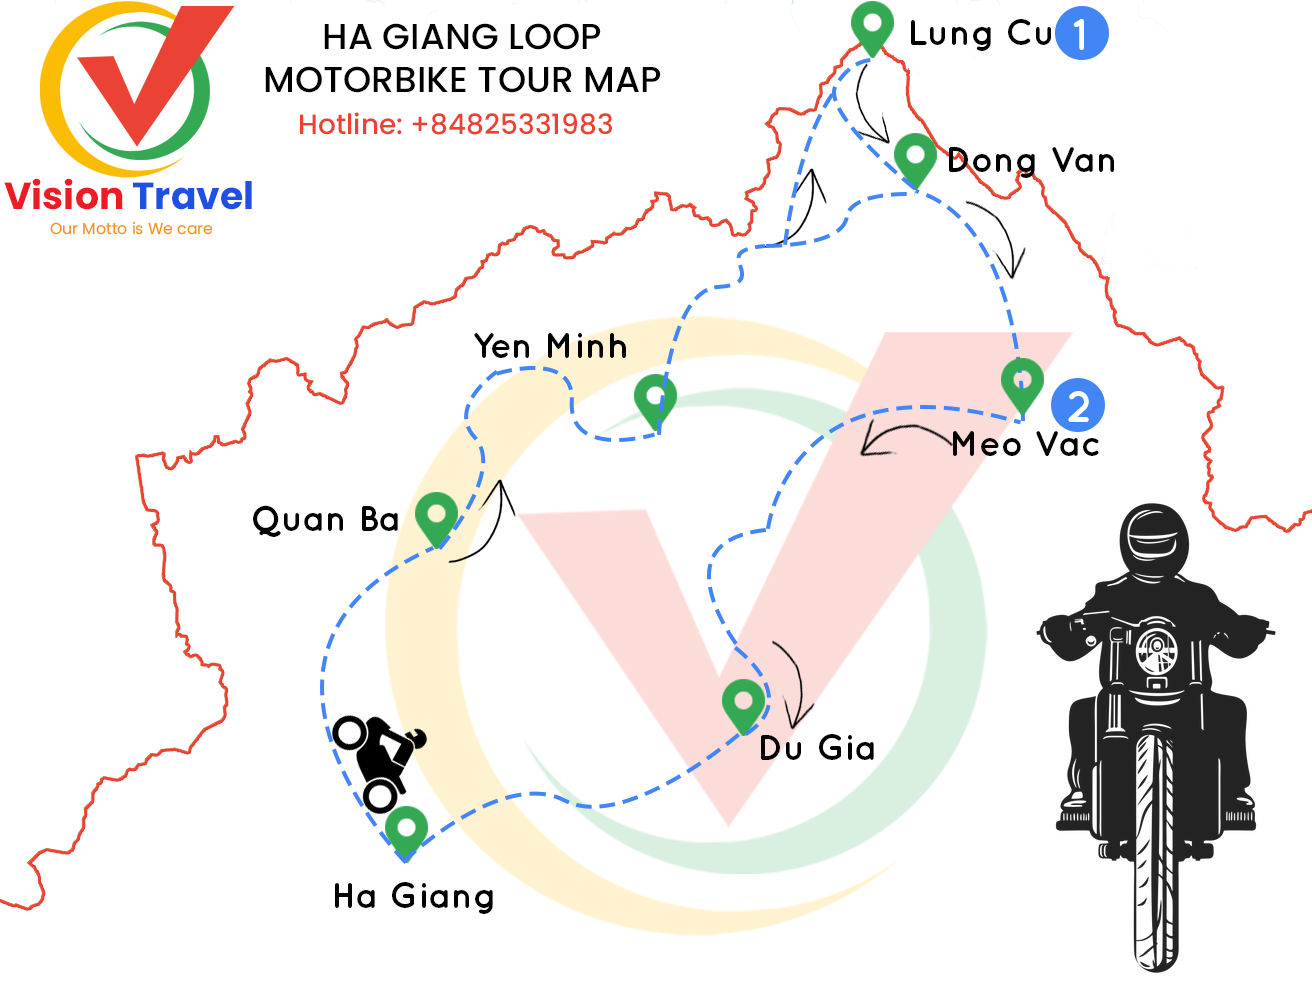 Travel map: 3-day Motorbike tour: Highlights of Ha Giang (Ha Giang Loop)